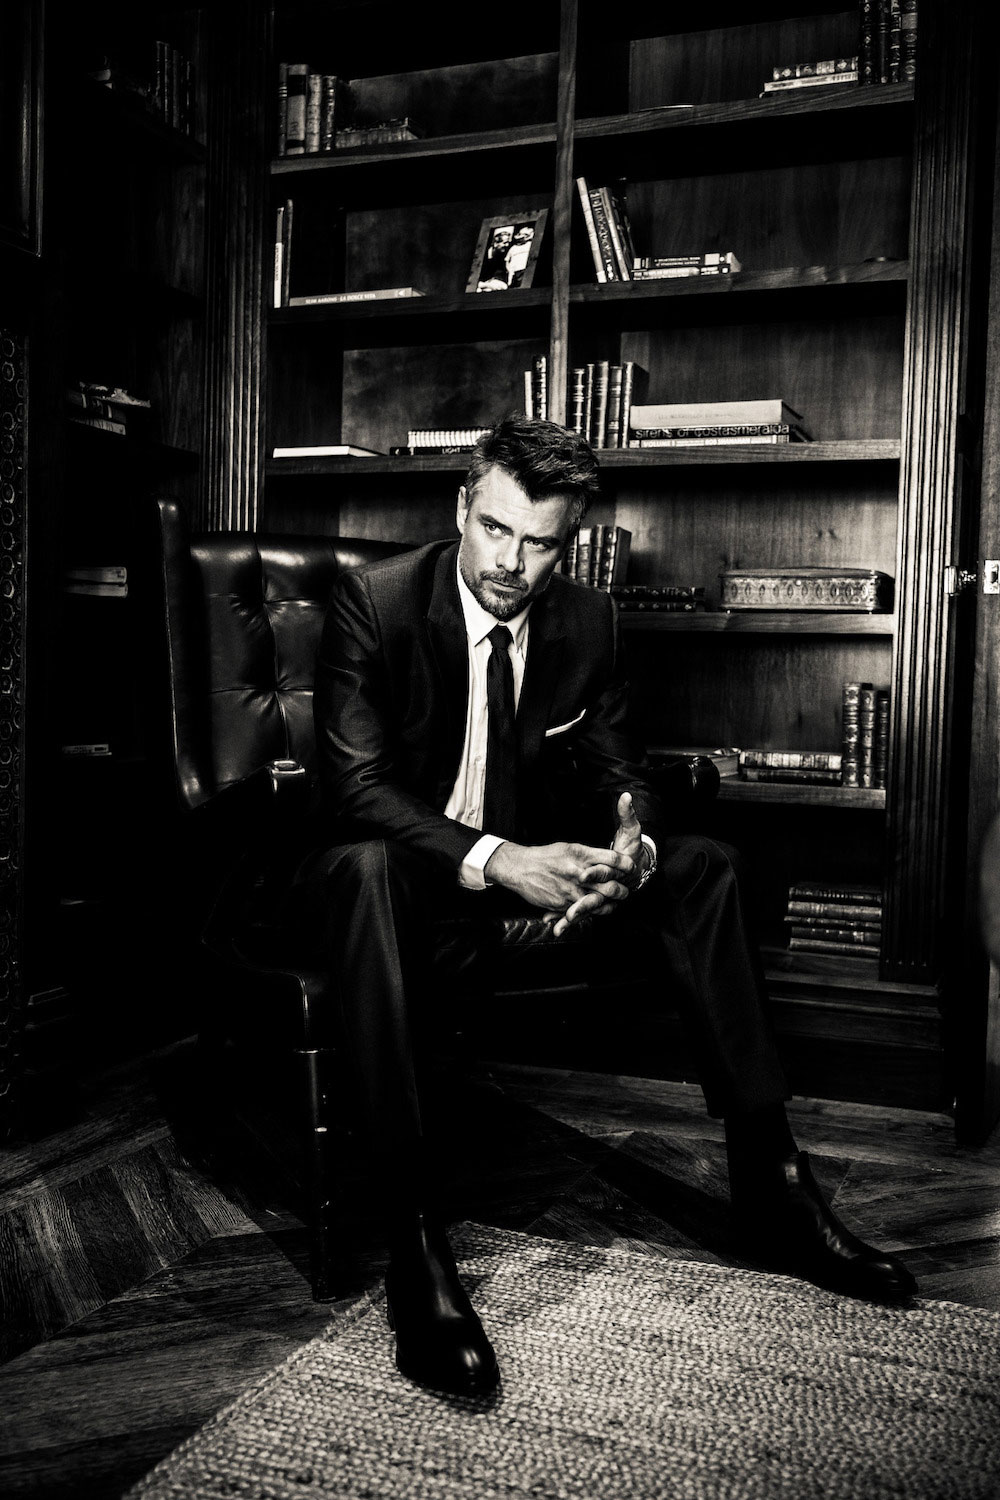 Josh poses in a Dior charcoal suit, Dolce & Gabbana shirt, Zegna tie and Panerai watch.